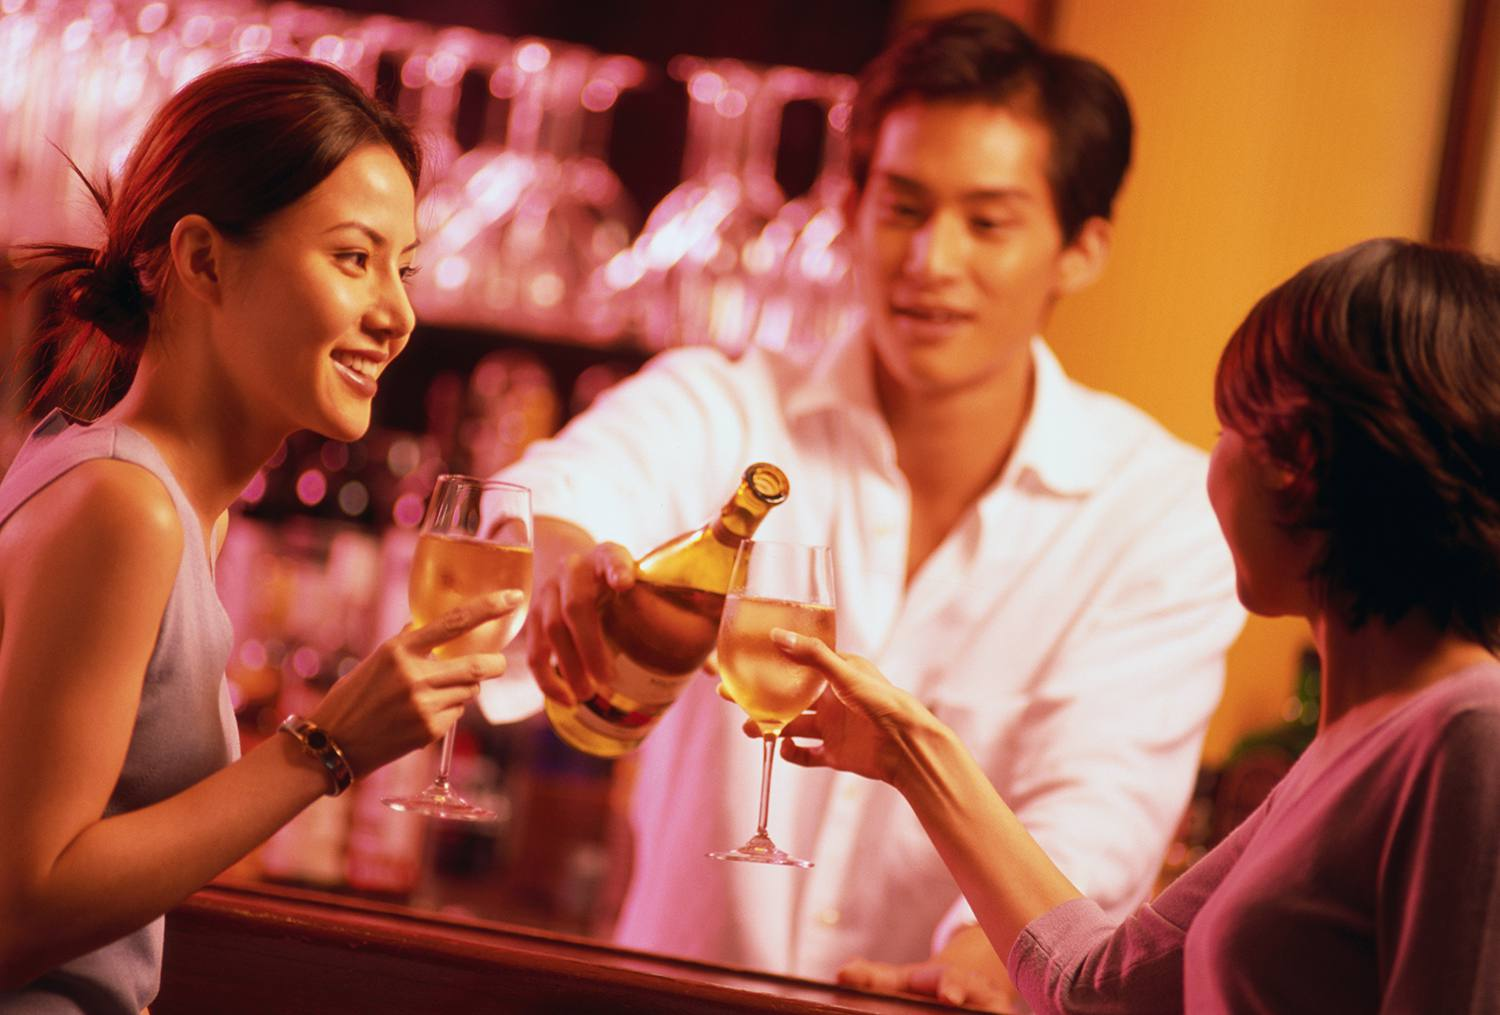 A bartender pouring two women wine